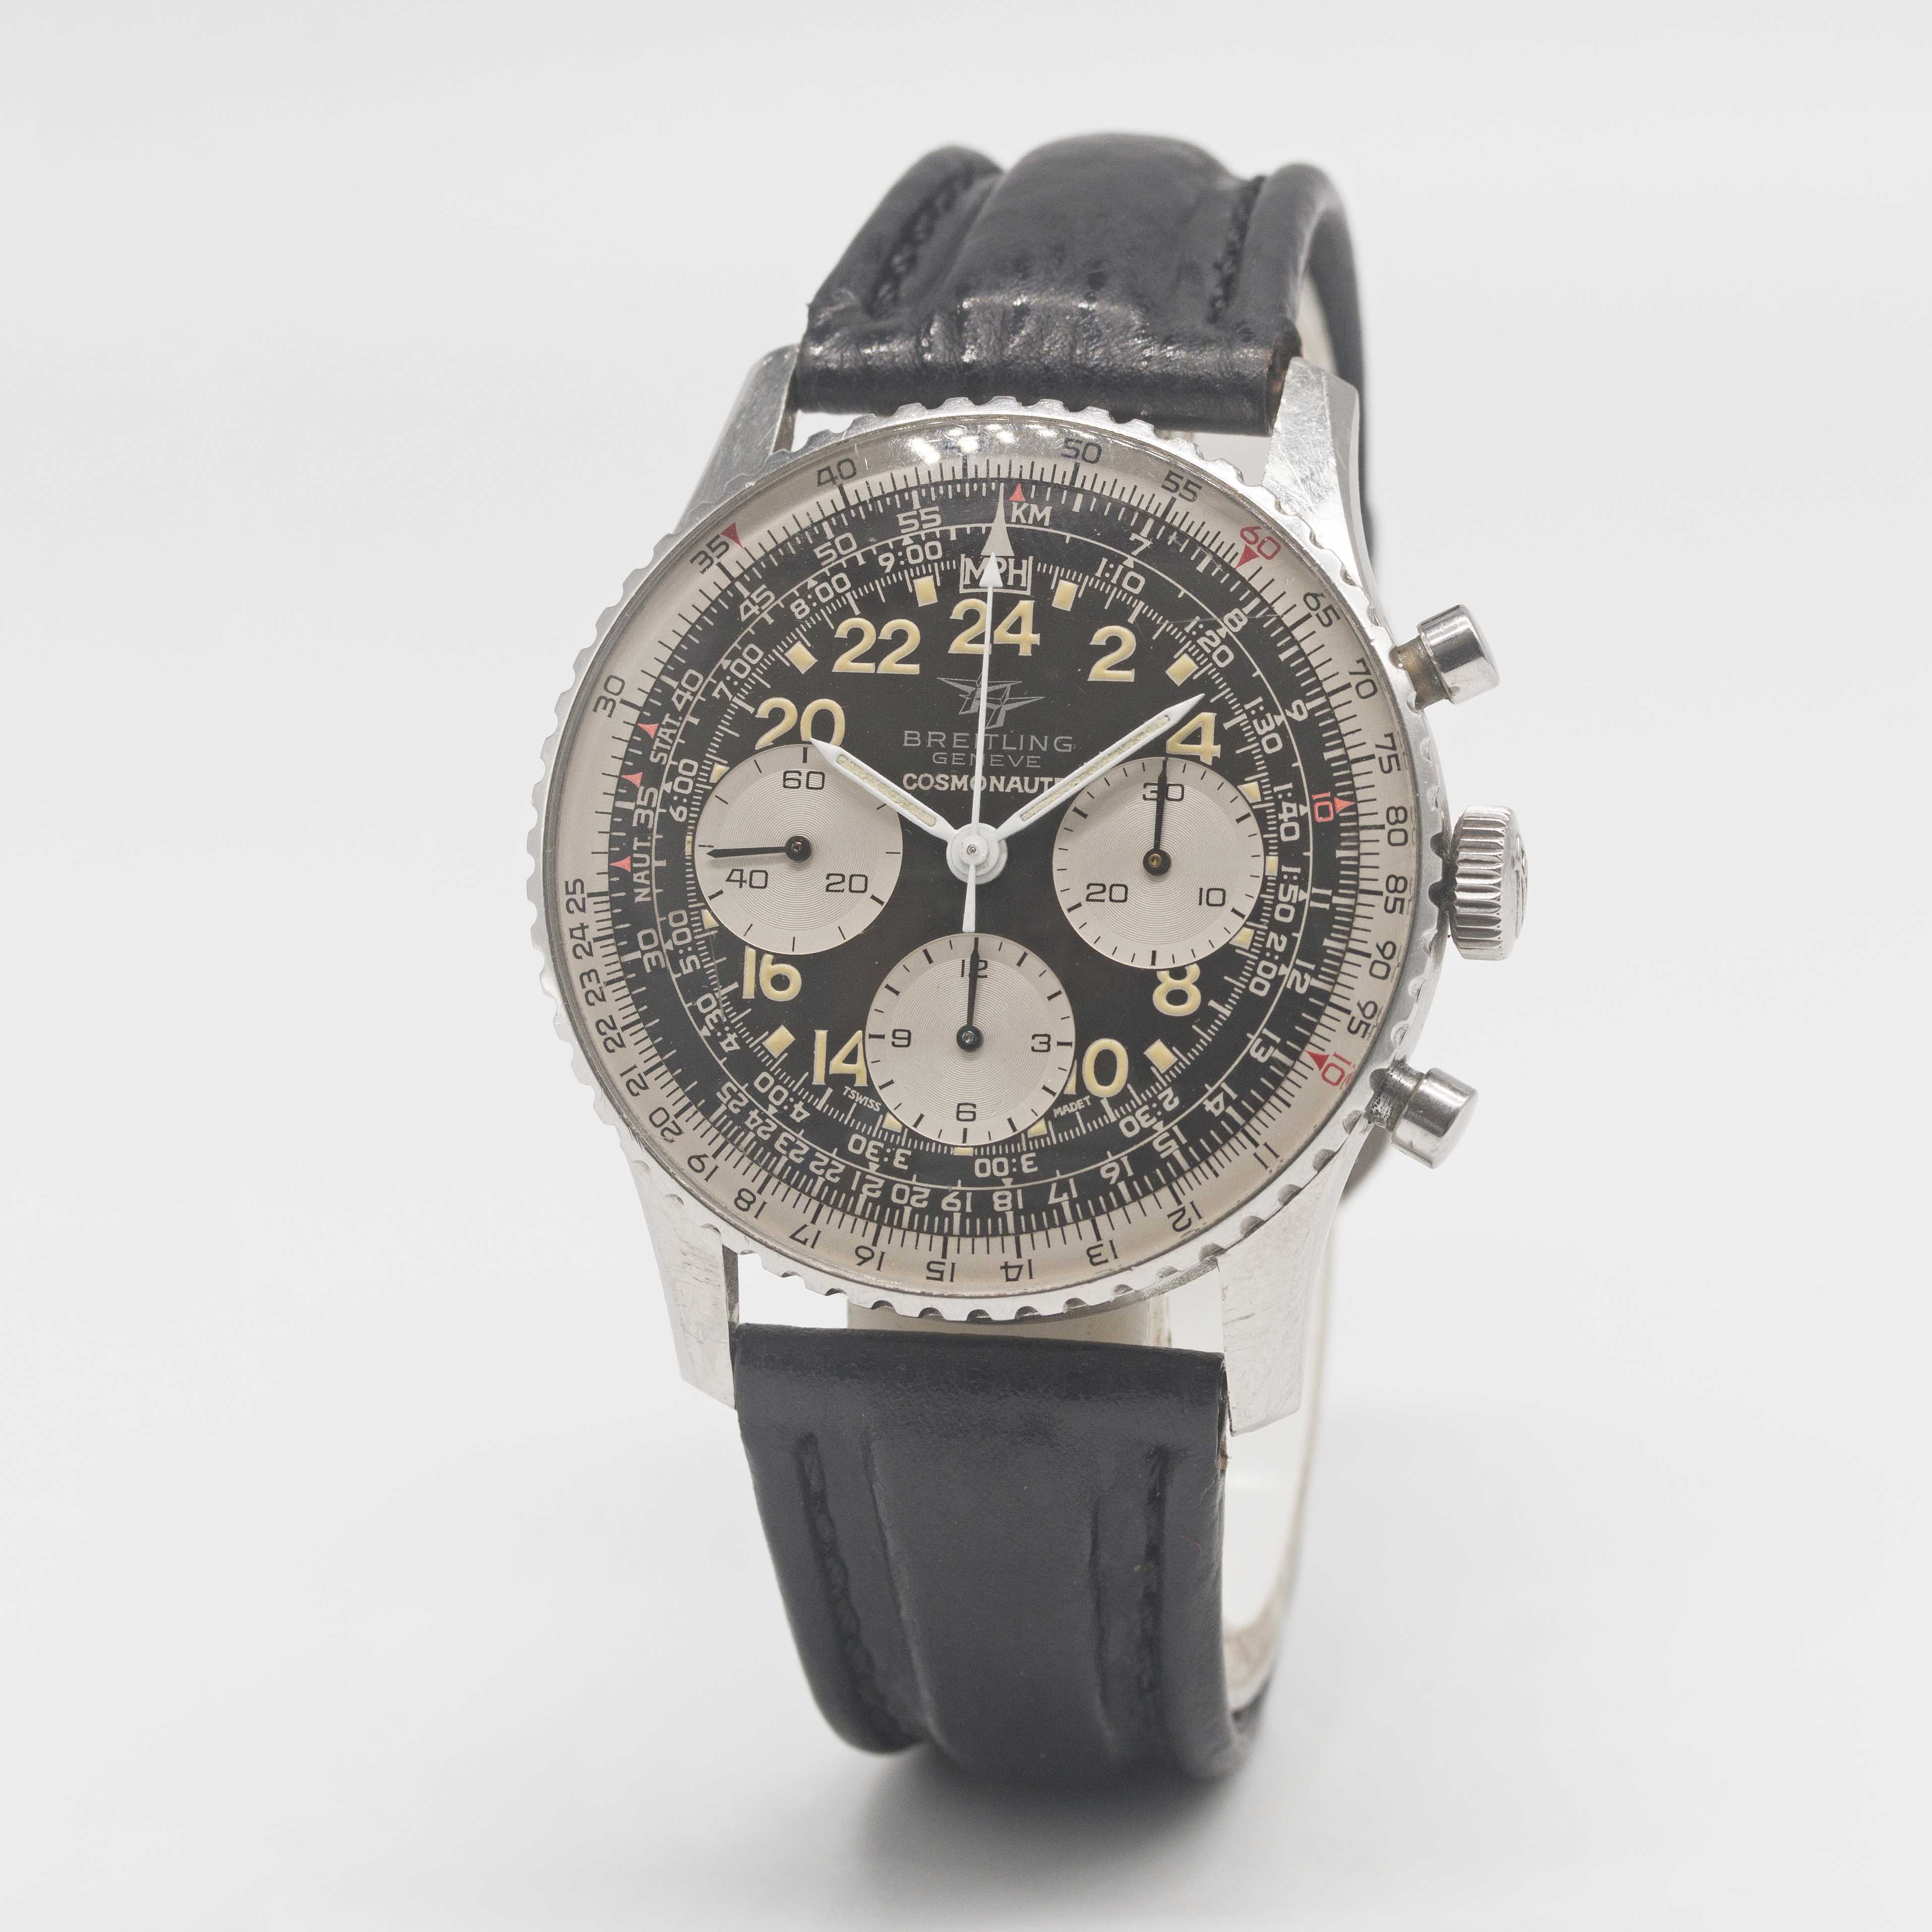 """Lot 26 - A GENTLEMAN'S STAINLESS STEEL BREITLING 24 HOUR """"COSMONAUTE"""" CHRONOGRAPH WRIST WATCH CIRCA 1965,"""